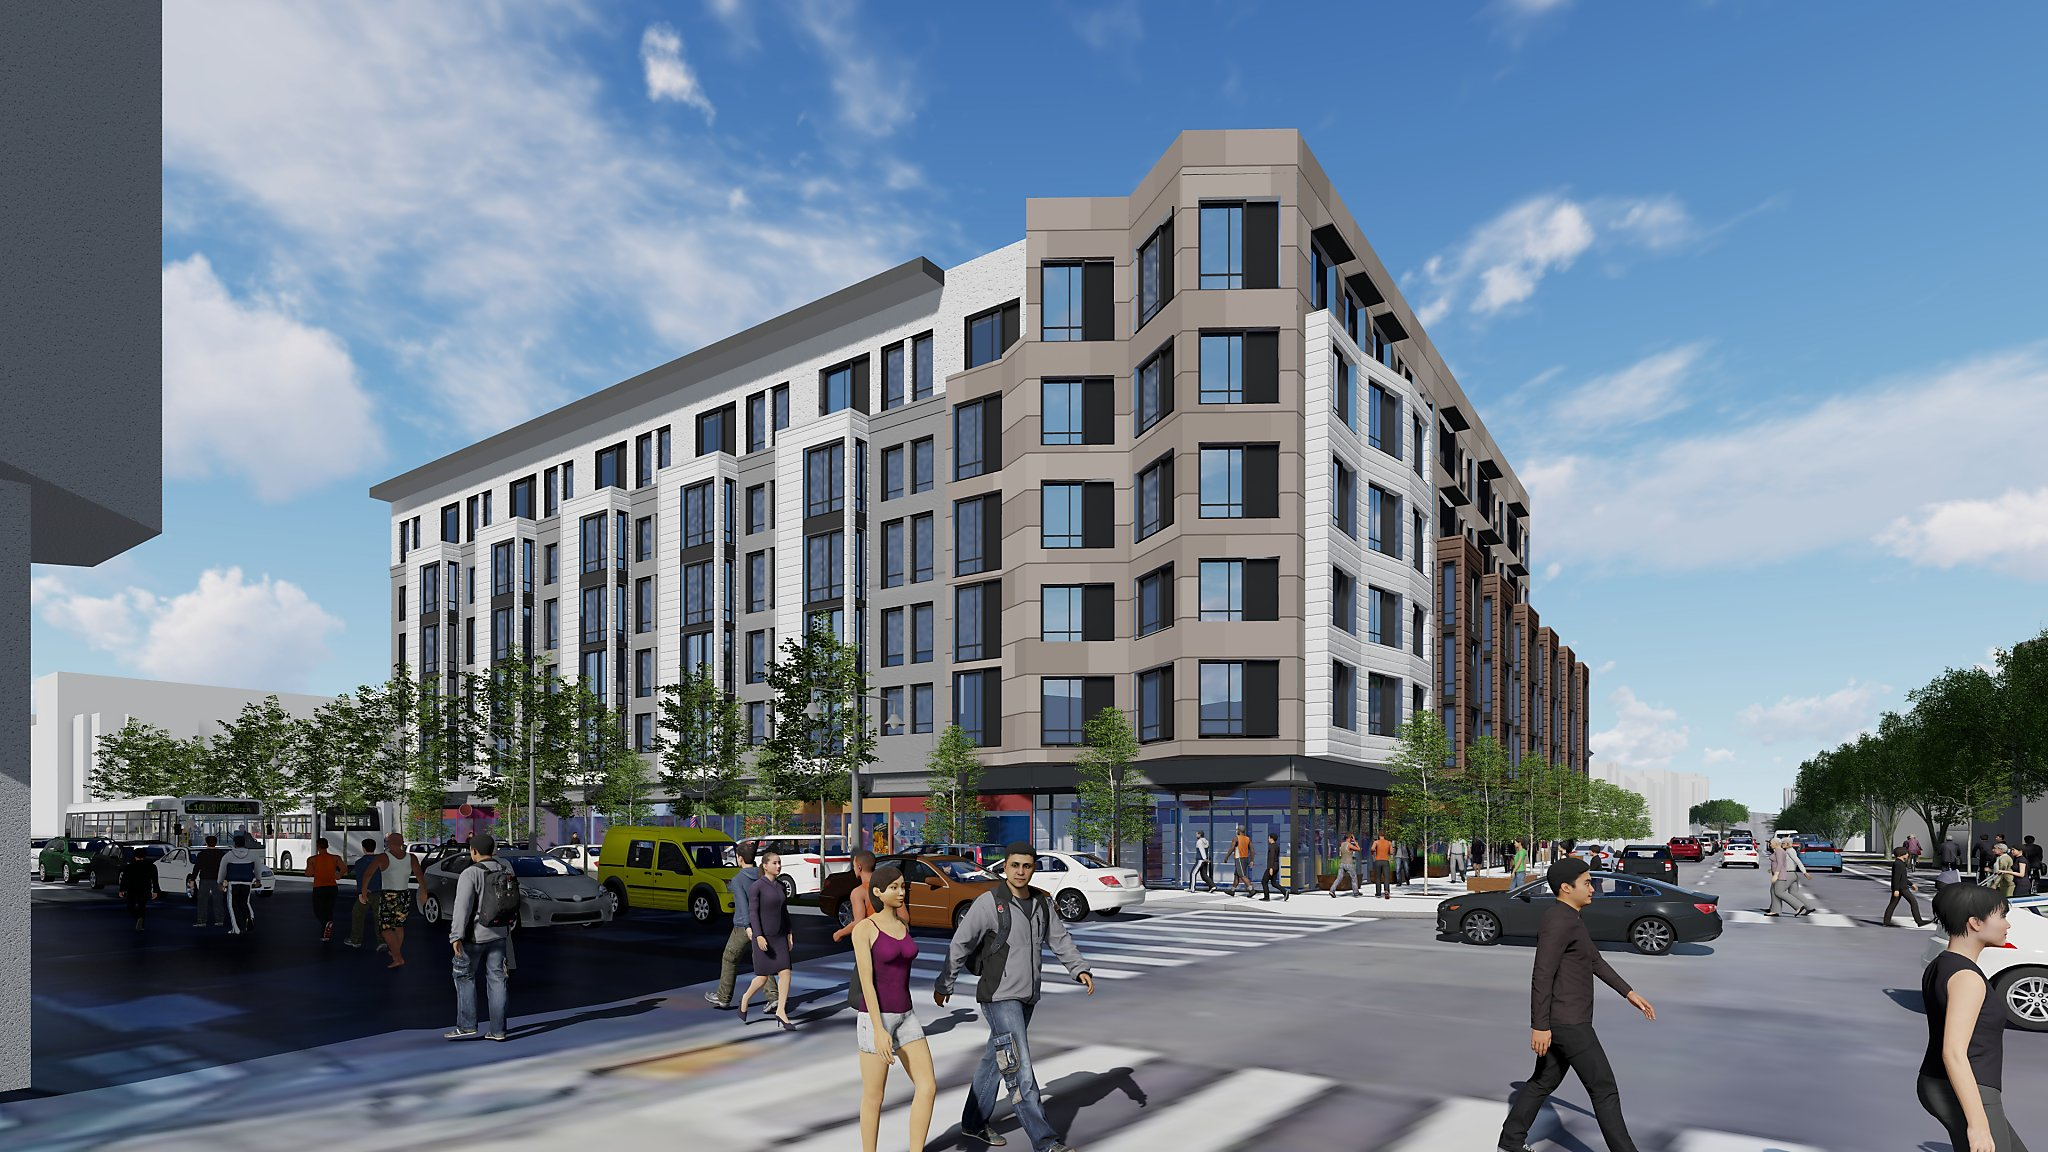 186 apartments to replace Touchless car wash on Divisadero